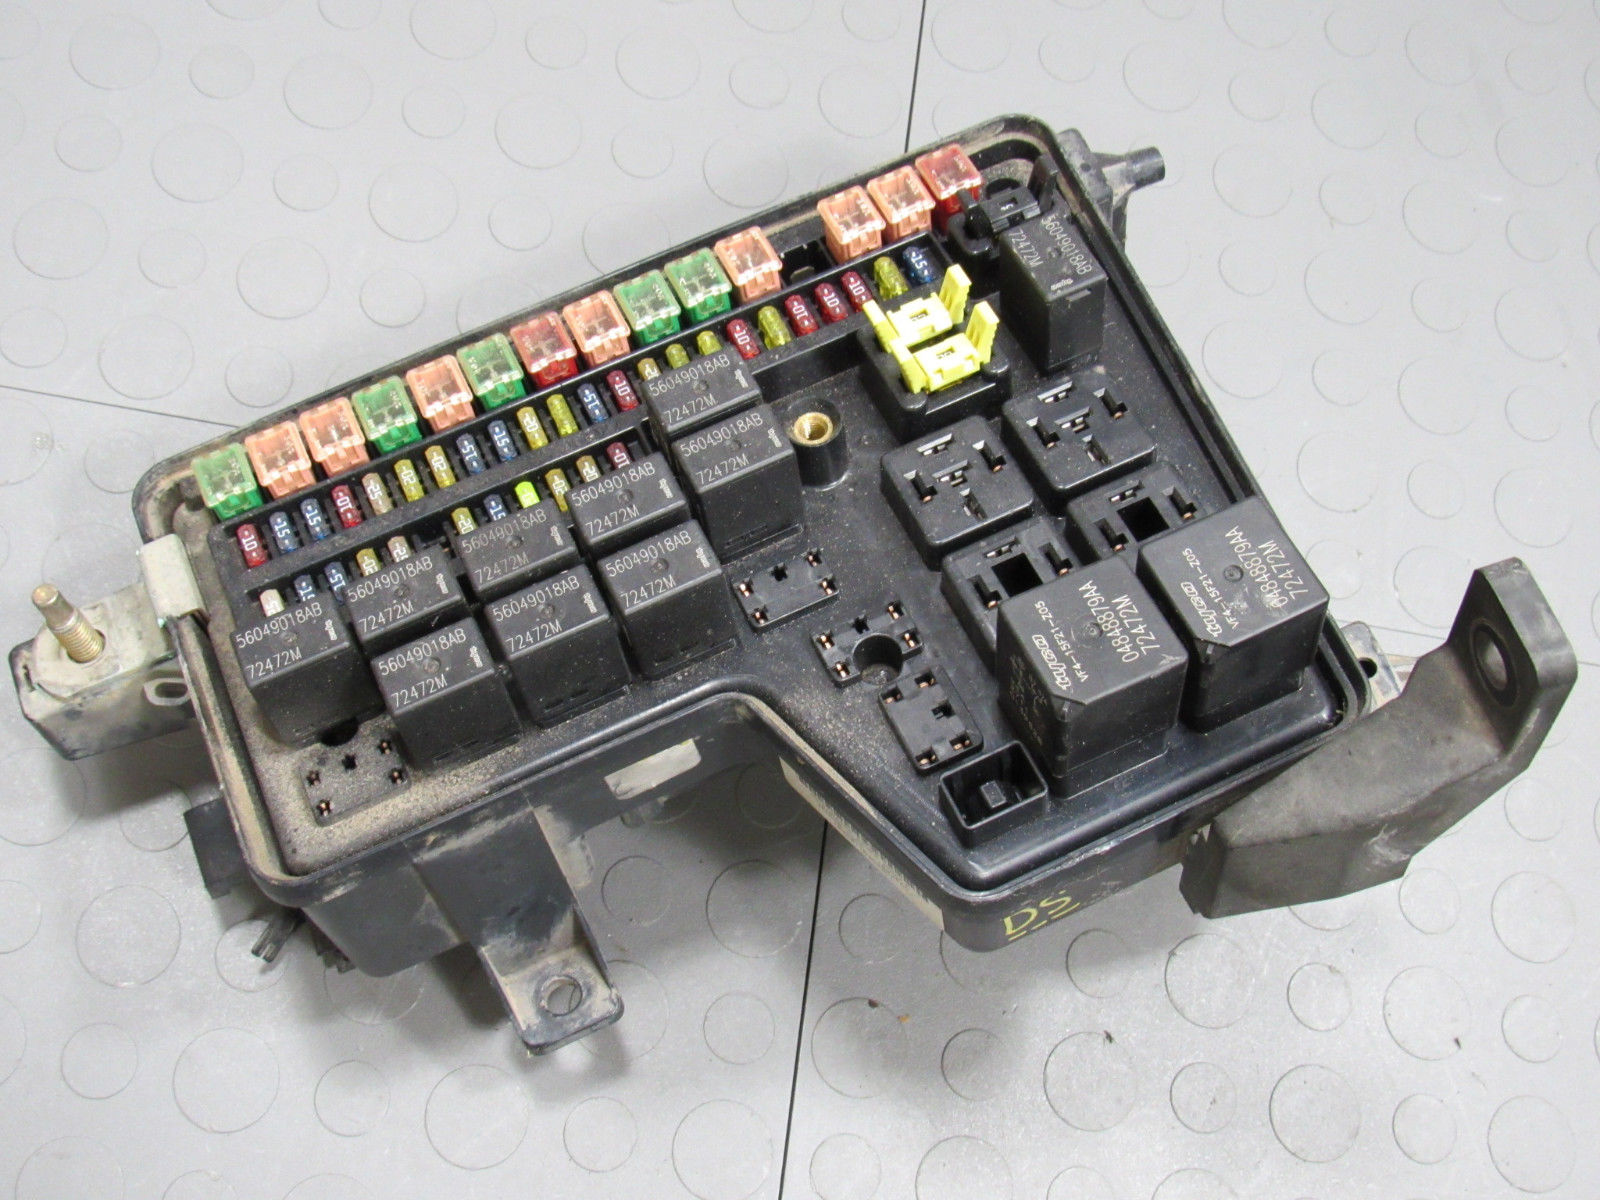 02 03 Dodge Ram Integrated Power Distribution Module Fuse Box 2002 Dodge Ram  1500 Fuse Box Diagram 02 Dodge Ram Fuse Box